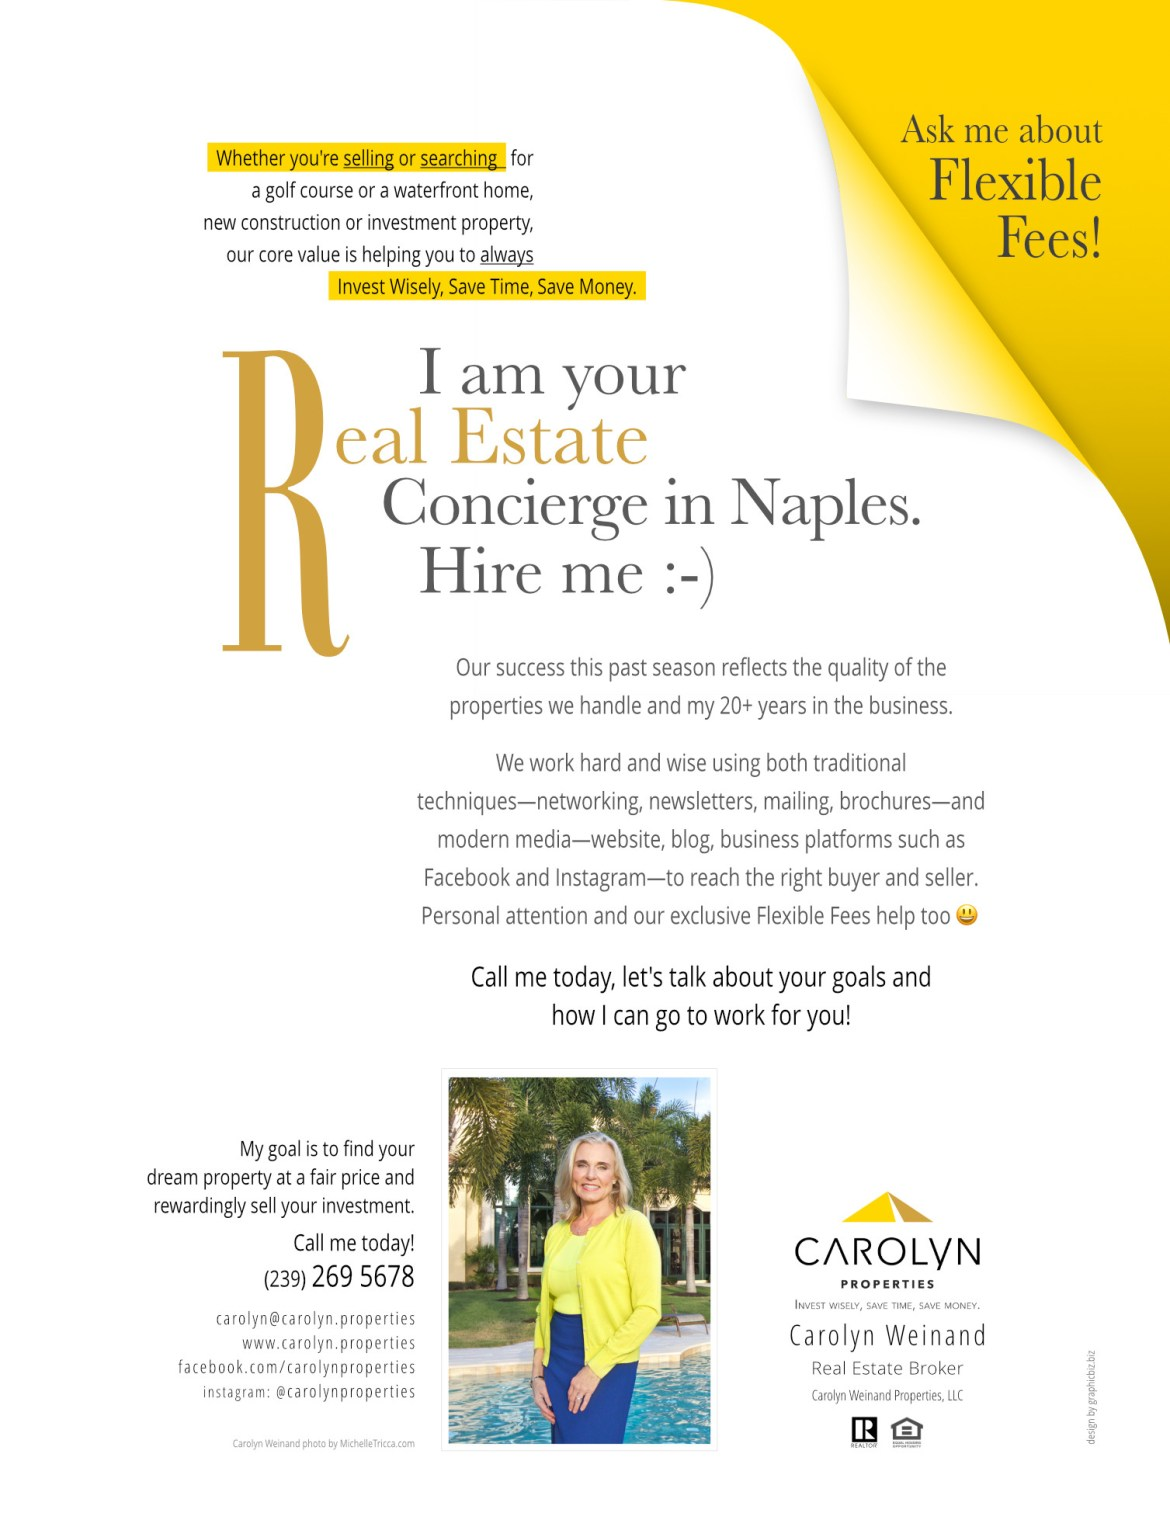 I am your Real Estate Concierge in Naples. Hire me!